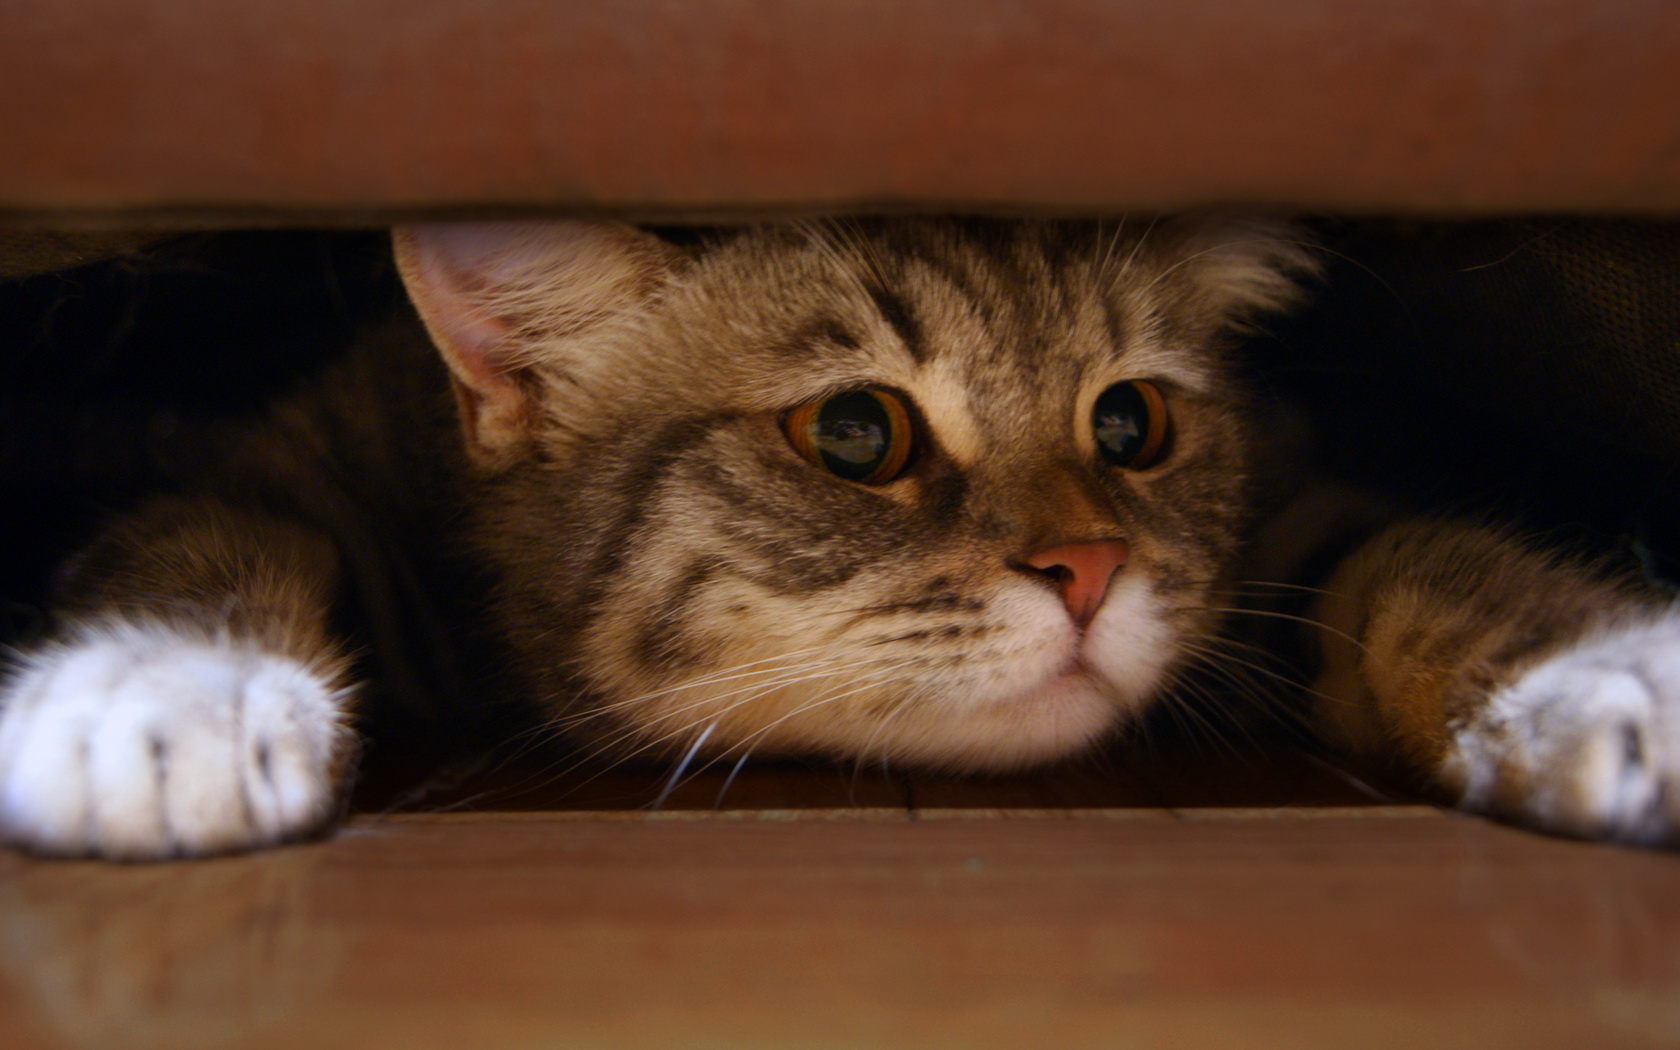 Scared cat Wallpaper and Background Image | 1680x1050 | ID ...